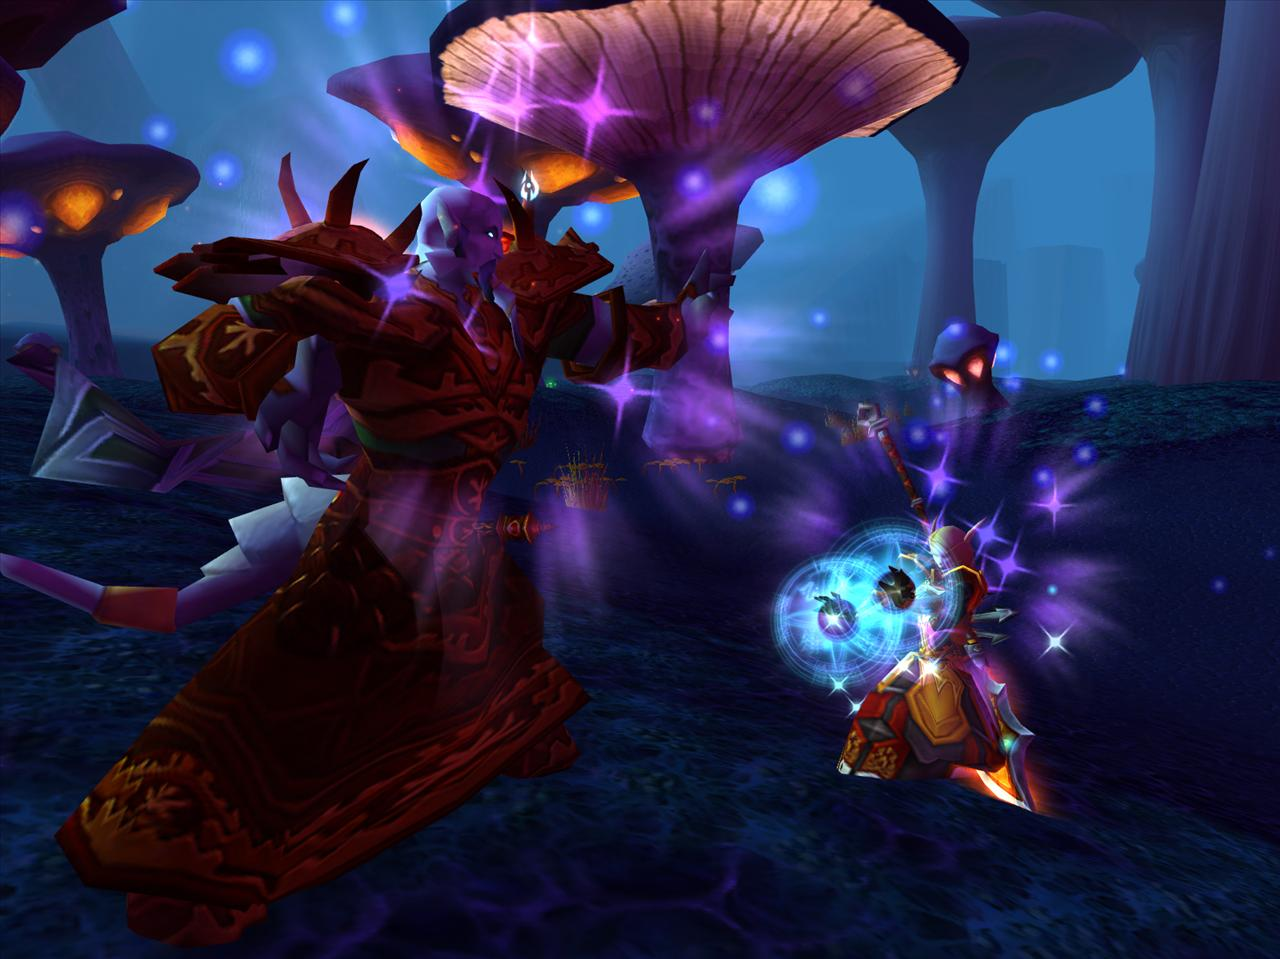 World of warcraft screen manipulations exposed girl